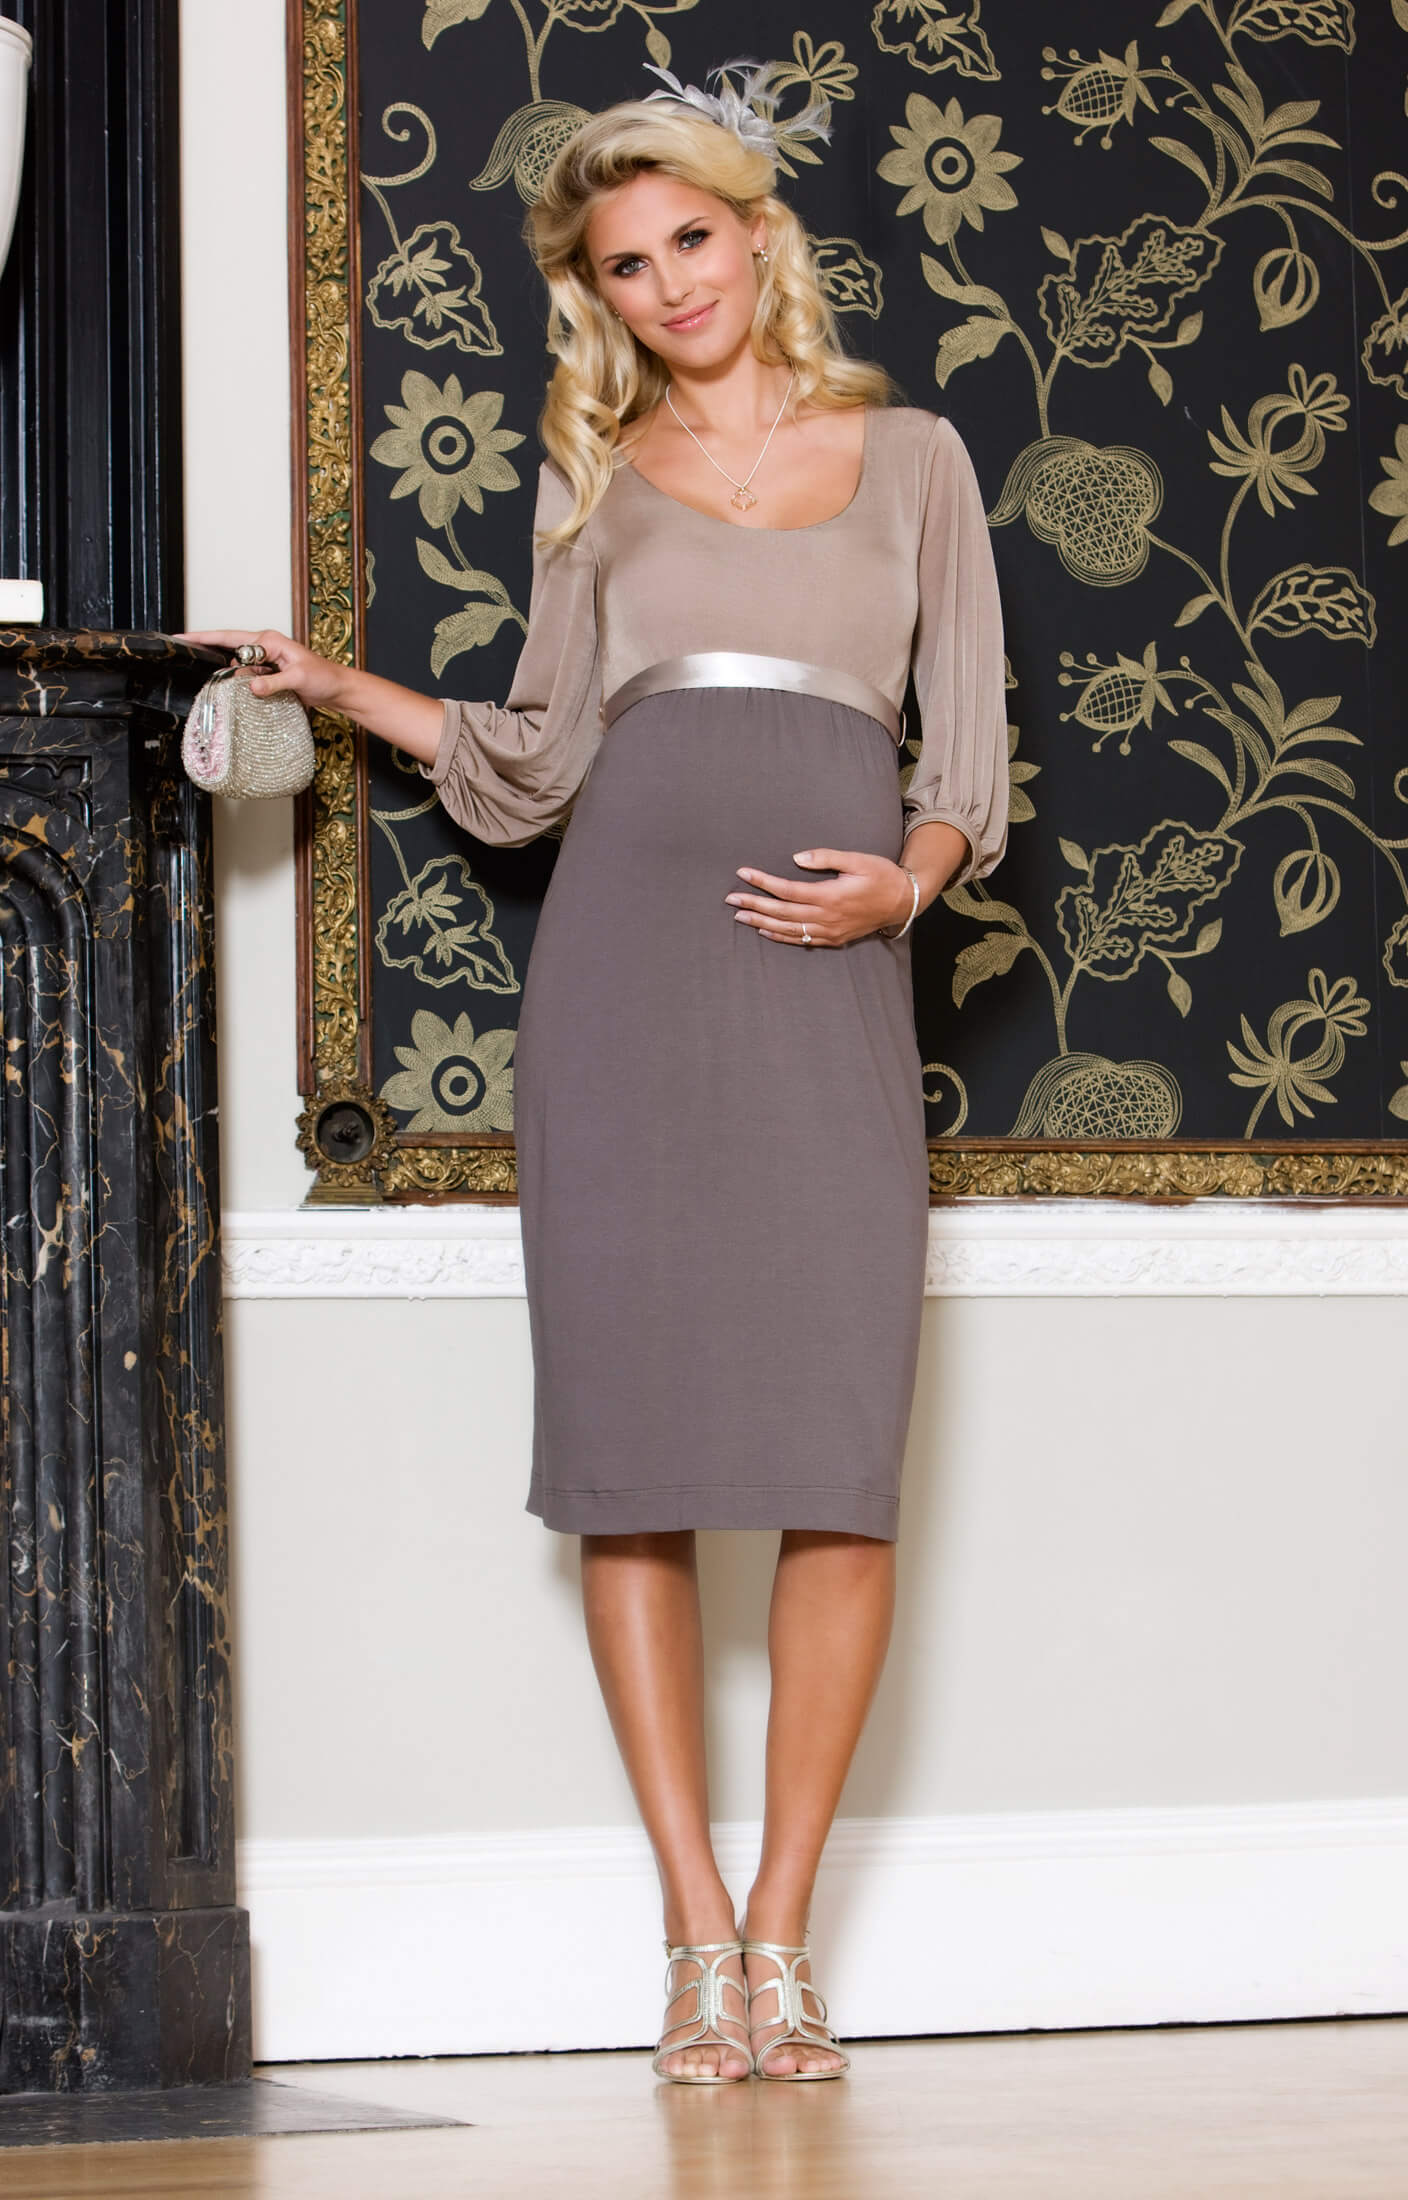 Sienna maternity dress dusk maternity wedding dresses evening sienna maternity dress dusk by tiffany rose ombrellifo Image collections